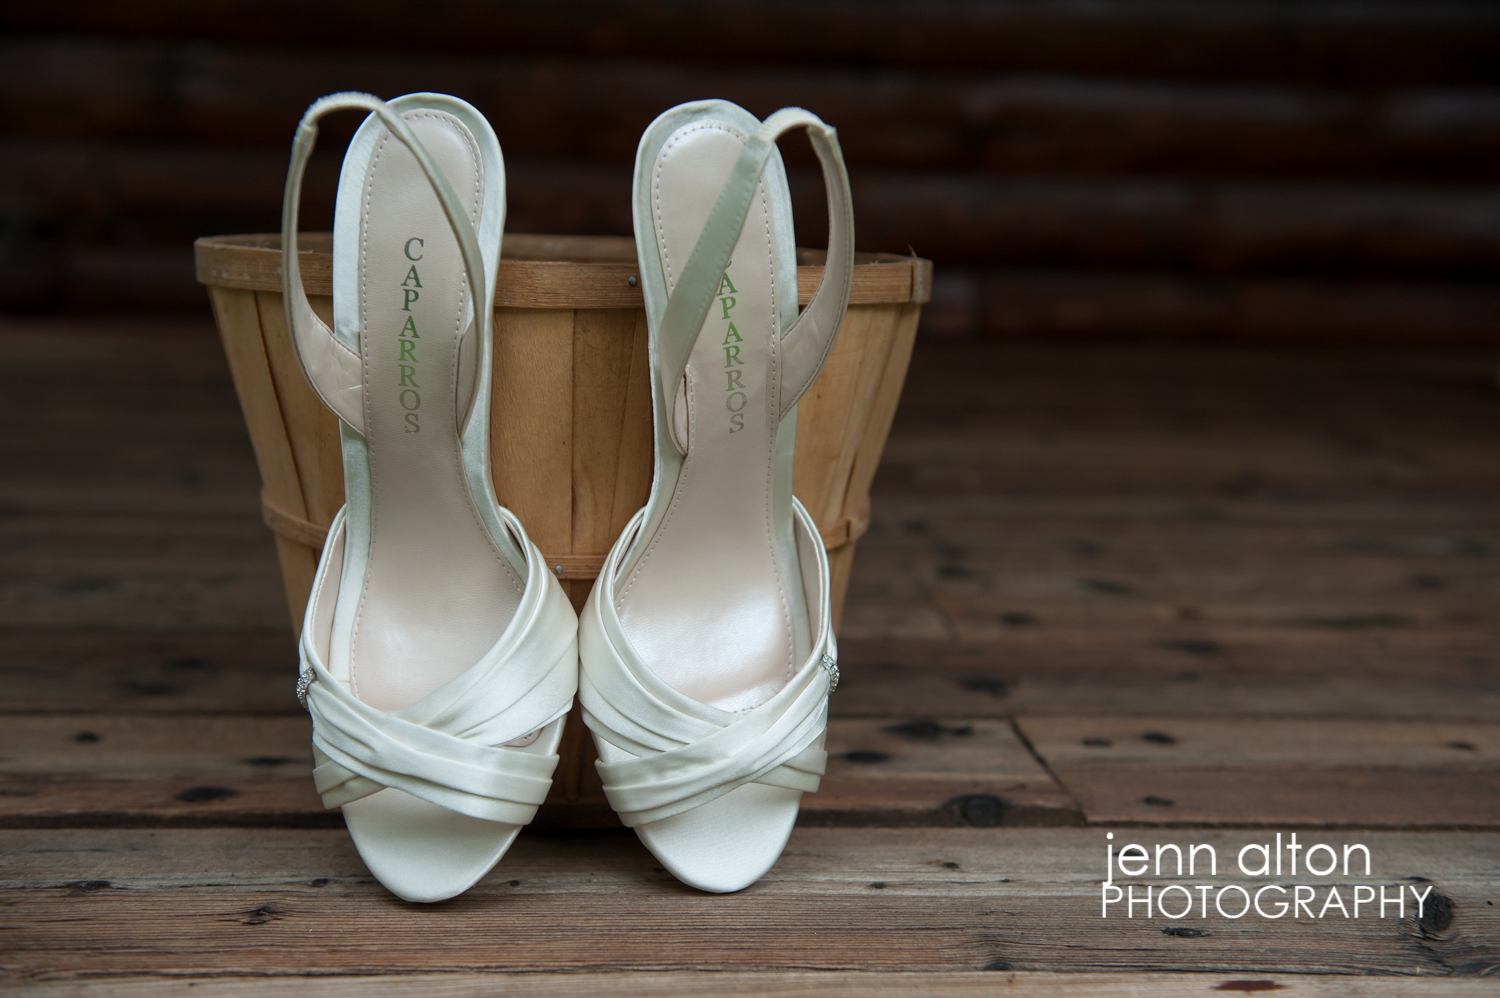 Bride's shoes detail, with apple bucket and wood porch